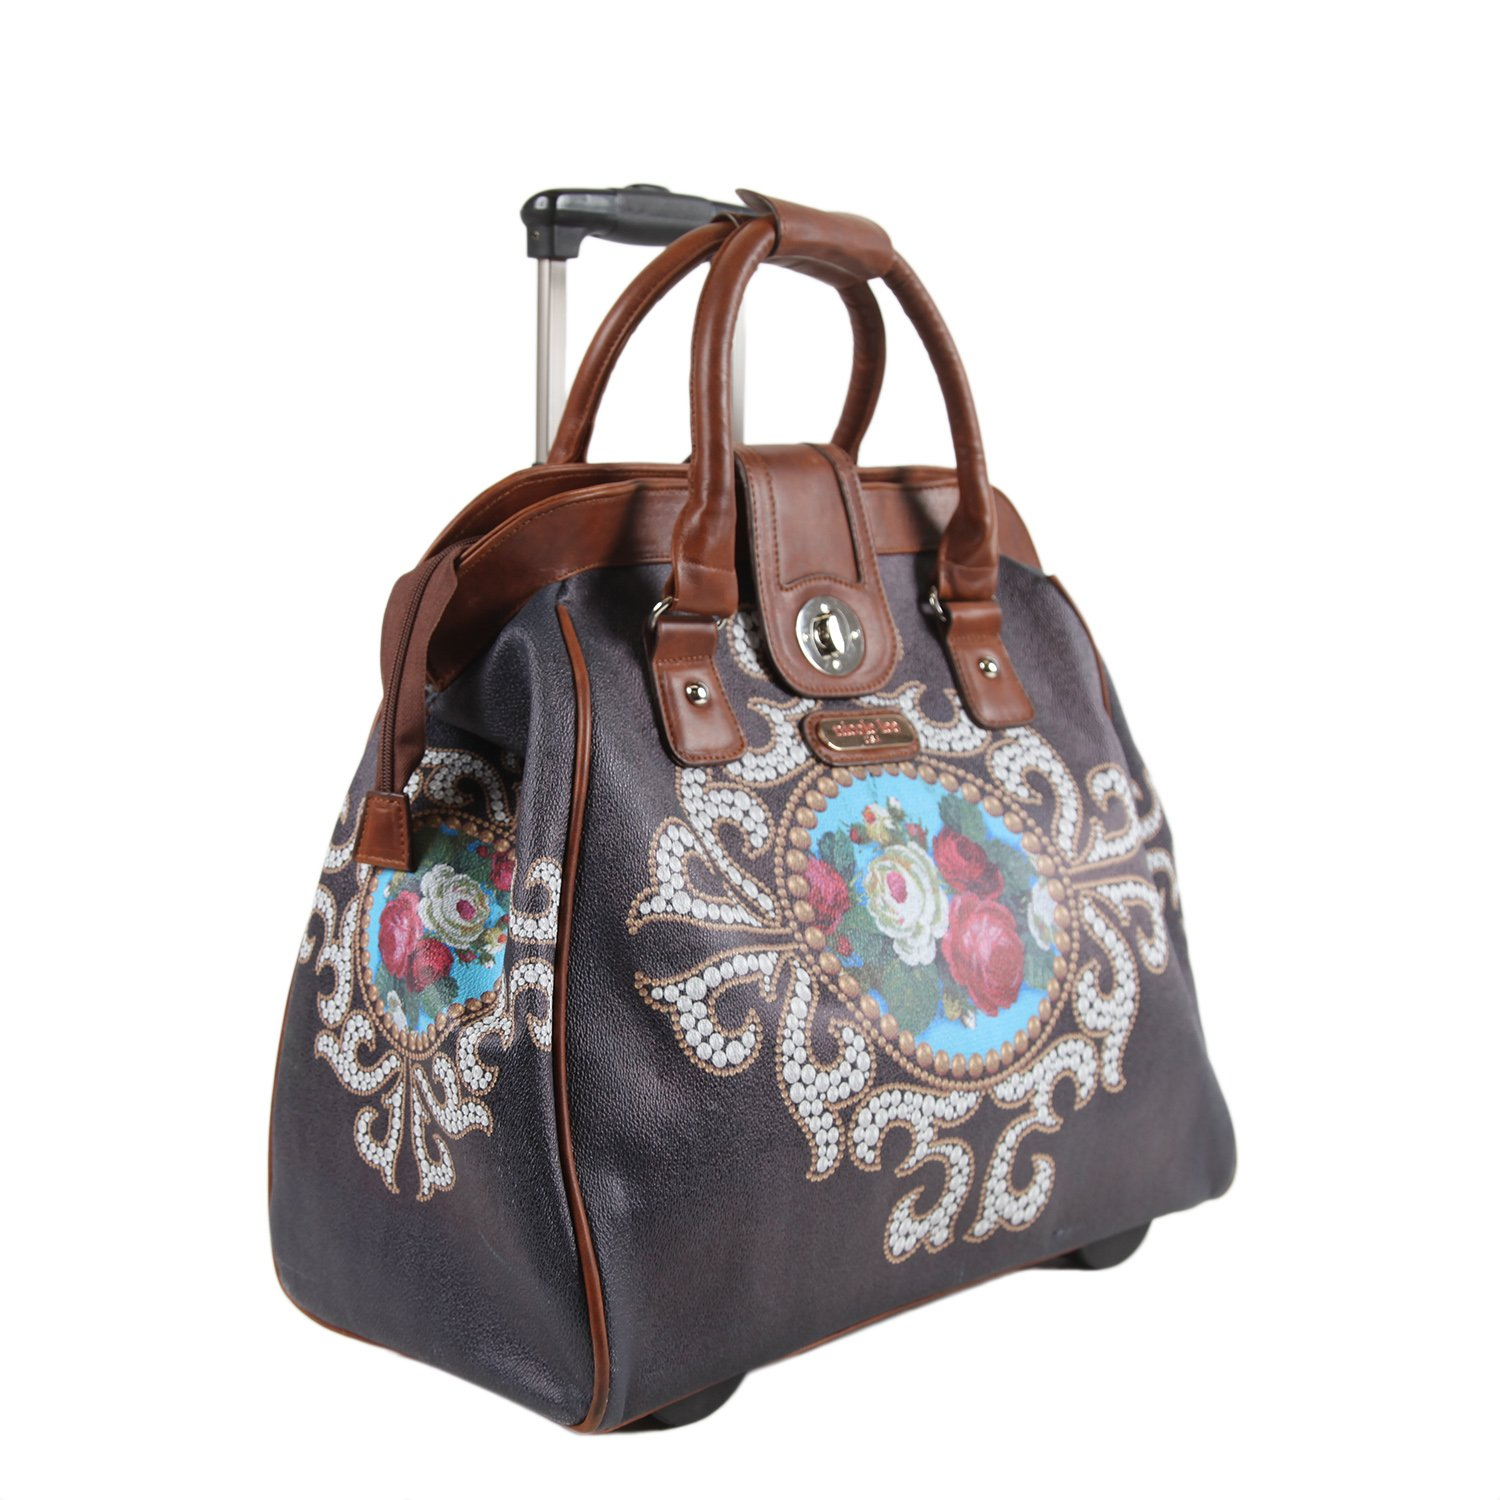 Nicole Lee Cheri Rolling Business Tote, Rose Pearl, One Size by Nicole Lee (Image #6)